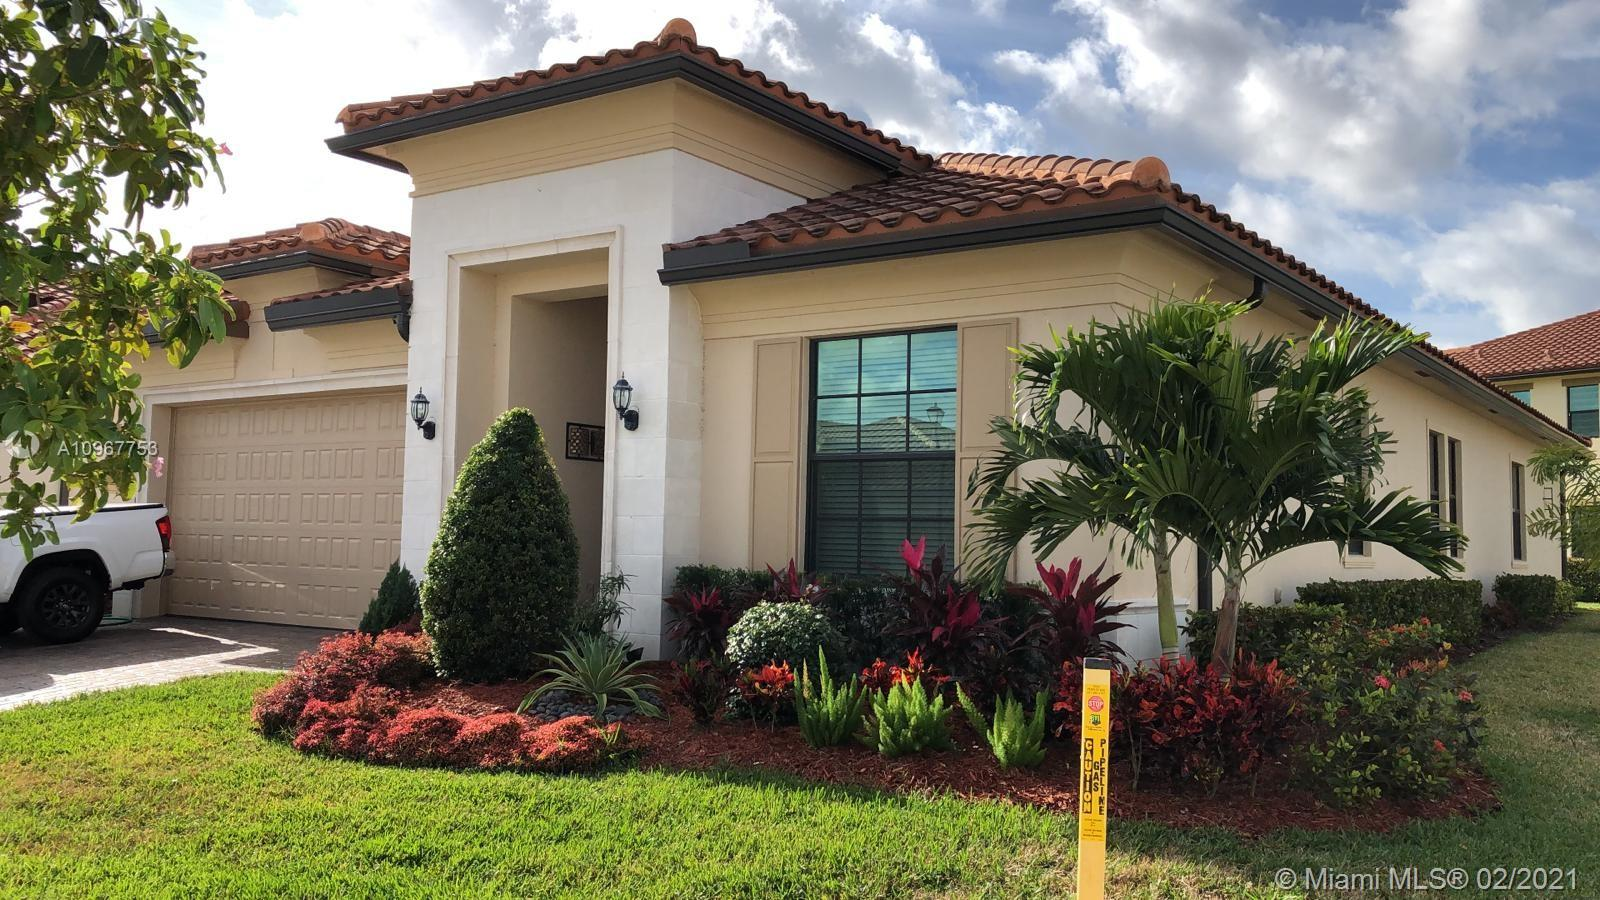 This 2019 3 Beds (plus Den) 2.5 Baths is located at a gated community on an oversized corner lot. This Parkland Bay home features a wide open floor plan, tray ceilings, lots of natural light, gorgeous kitchen with quartz countertop, marble backsplash, island, SS appliances, gas stove, double oven and microwave. Beautiful 24x24 light tile floor, impact windows. Laundry room with wall cabinets and a sink. Master bed with spacious walk in closet, master bath with a shower and a separate bathtub, double sink with quartz countertop. As a resident, you can enjoy upscale luxury living, it features aerobics studio, state of the art fitness center, resort-style swimming pool with beach entry, tennis courts and much more!